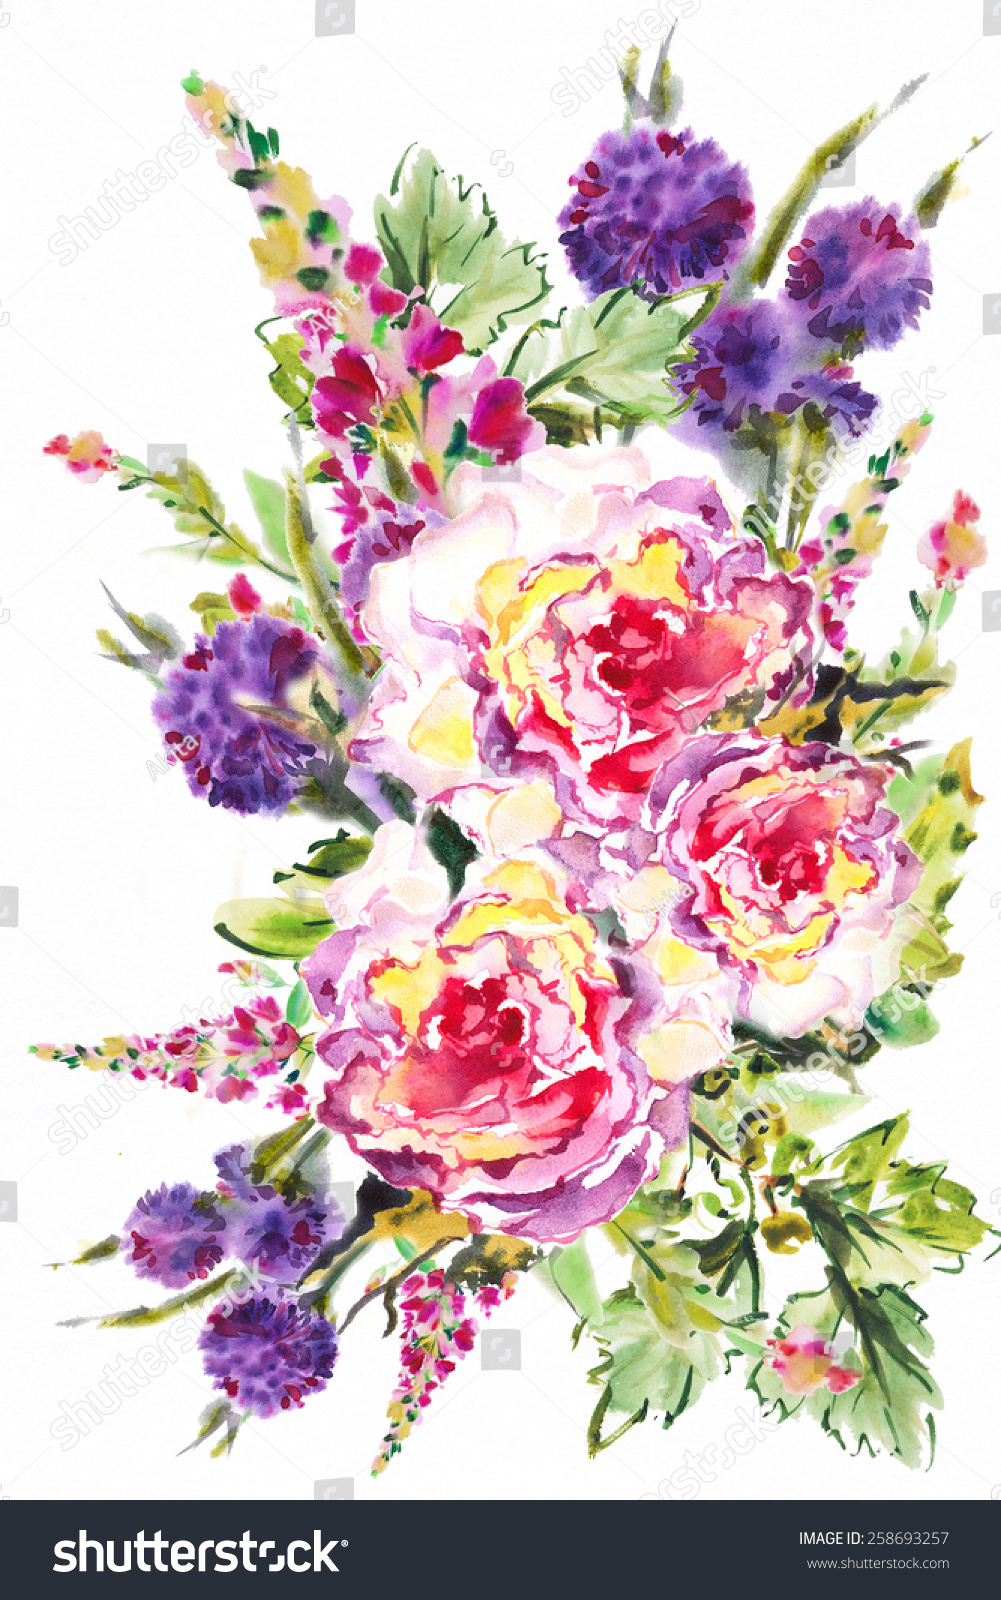 Bright Exotic Bouquet Flowers Drawn Watercolor Stock Illustration ...